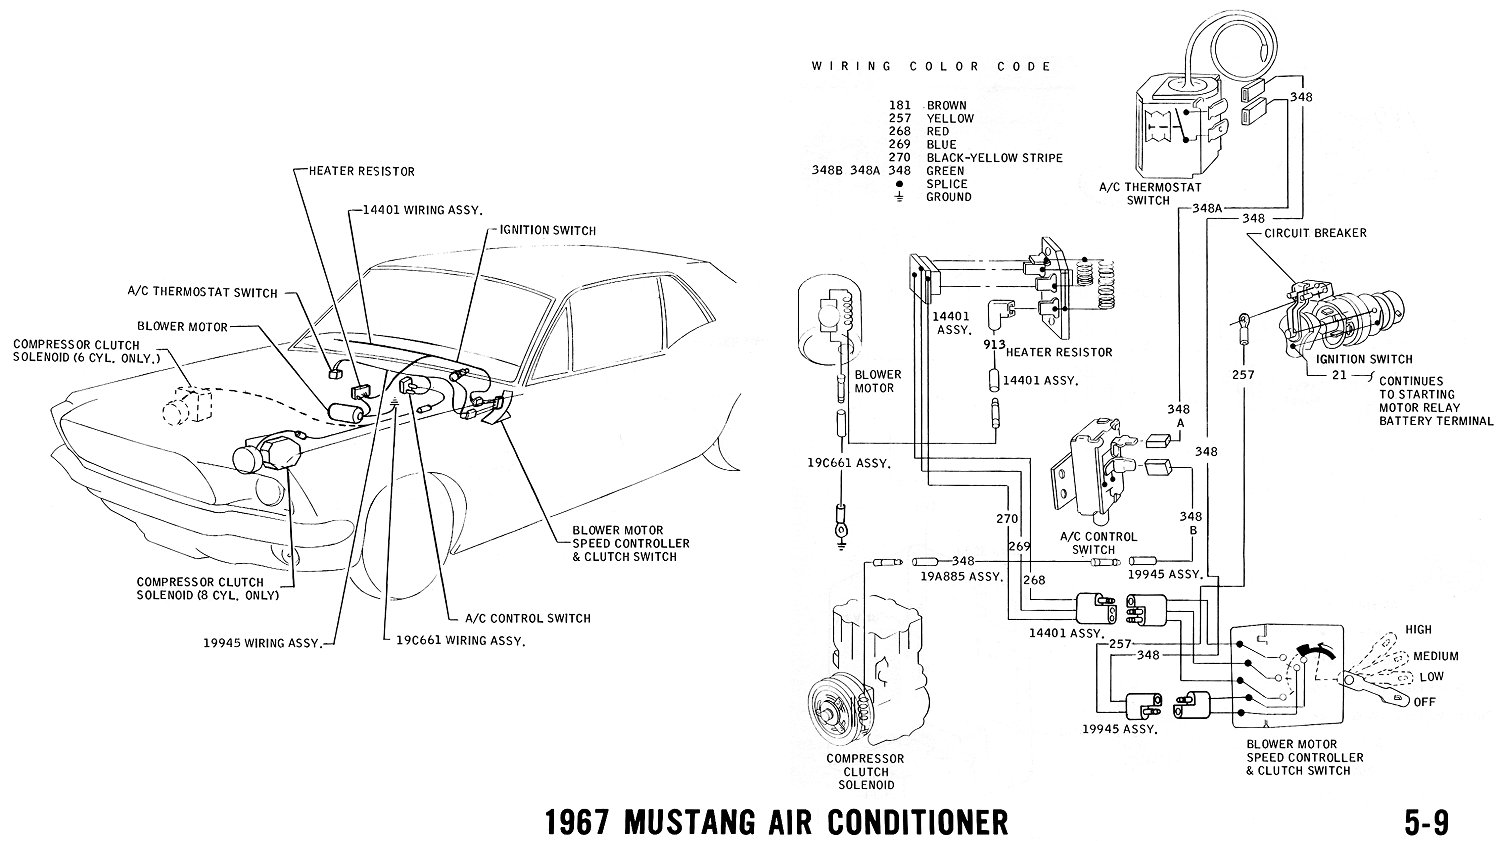 Yamaha Golf Cart Engine Diagram in addition 4wtmr Ford Mustang 67 Mustang Convertible Installed together with 1976 Ford Vacuum Routing Diagram additionally Discussion T948 ds543768 further 1964 Corvette Wiper Motor Diagram. on 1965 mustang ac diagram